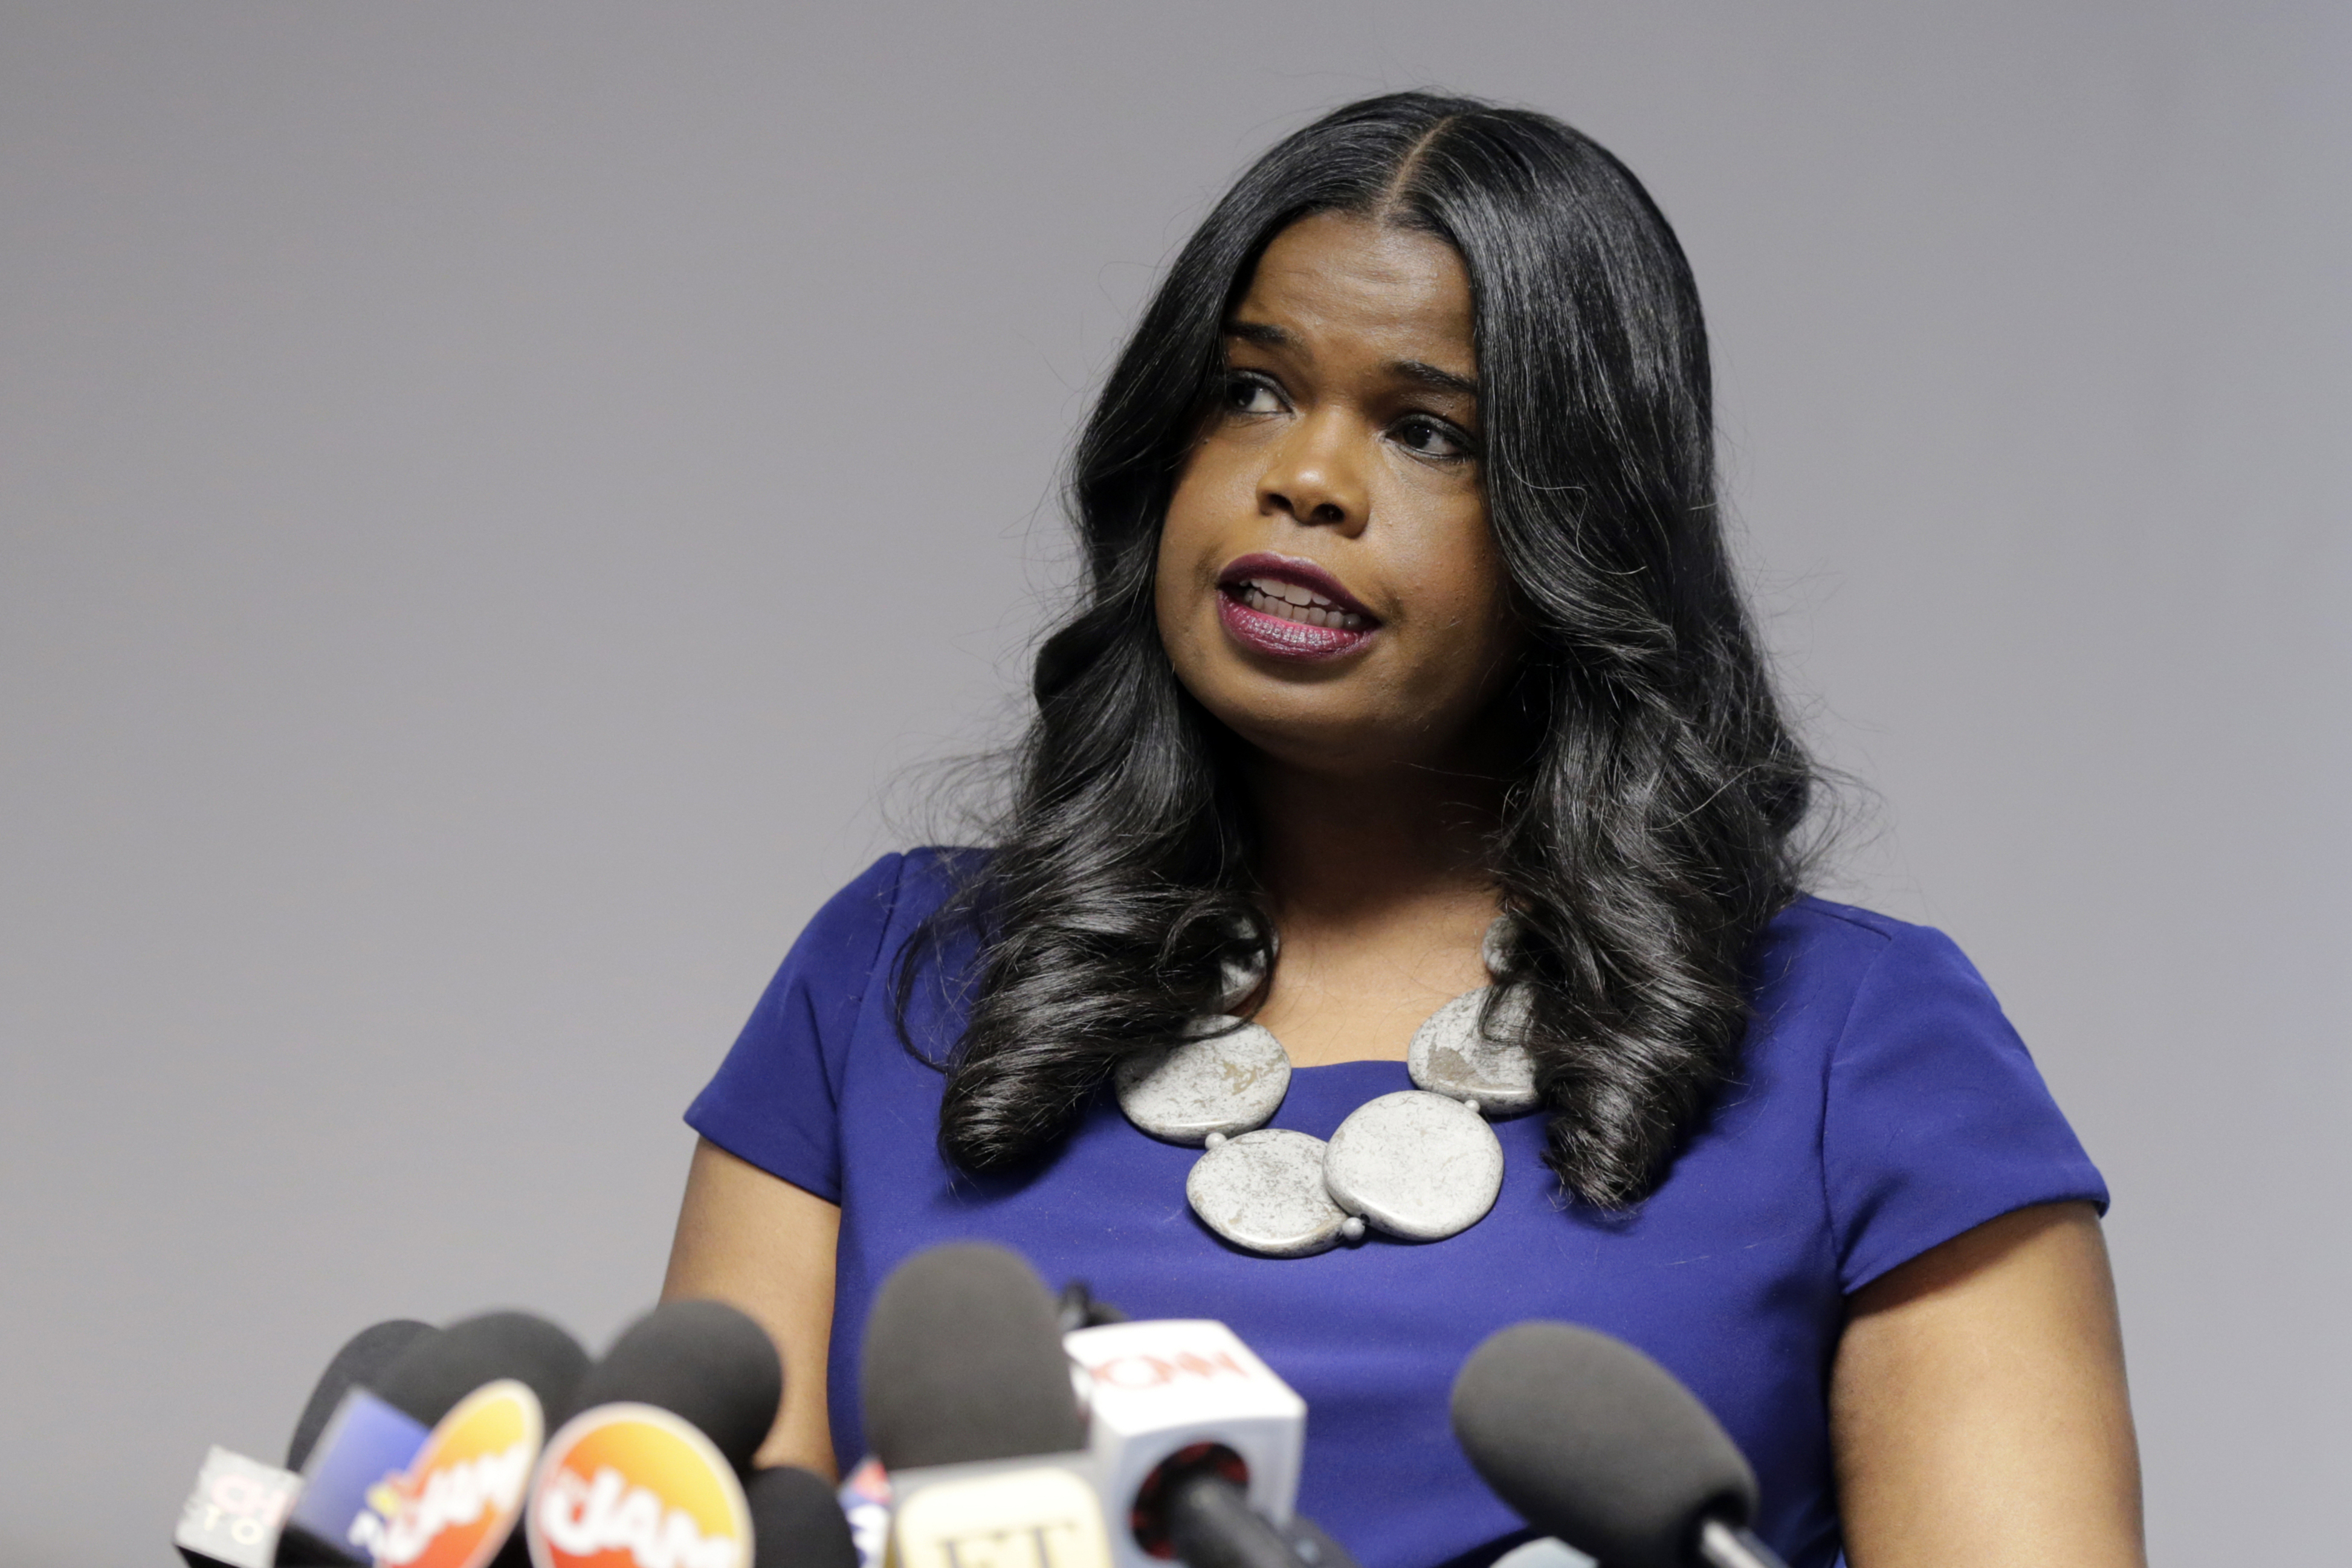 In this Feb. 22, 2019 file photo, Cook County State's Attorney Kim Foxx speaks at a news conference, in Chicago. Foxx who was harshly criticized when her office suddenly dropped charges against actor Jussie Smollett, says Tuesday, Nov. 19, 2019 that she's running for re-election.